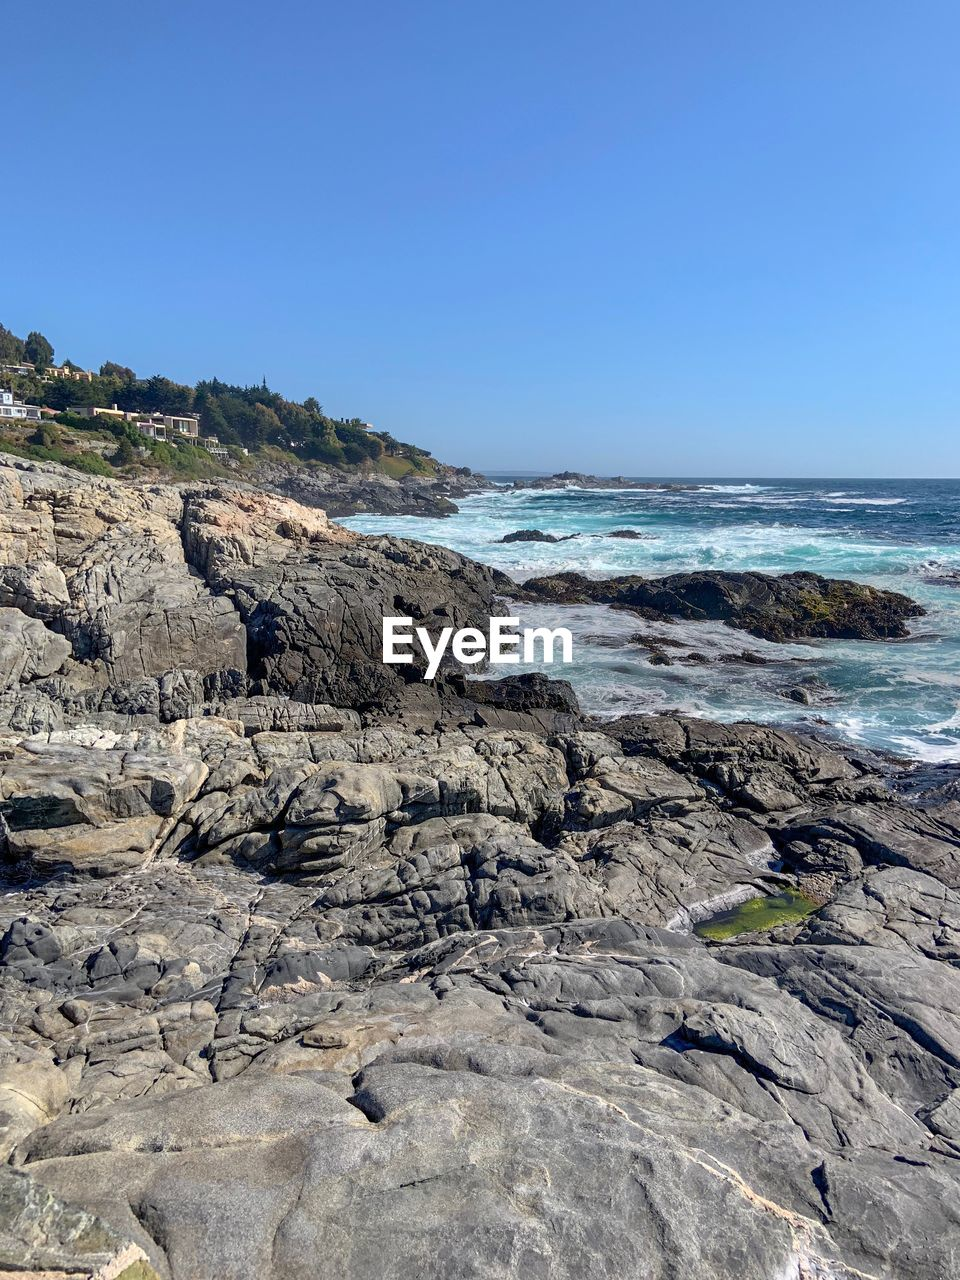 rock, sea, sky, rock - object, beauty in nature, water, solid, beach, land, scenics - nature, clear sky, nature, rock formation, day, no people, non-urban scene, copy space, tranquility, tranquil scene, horizon over water, outdoors, rocky coastline, marine